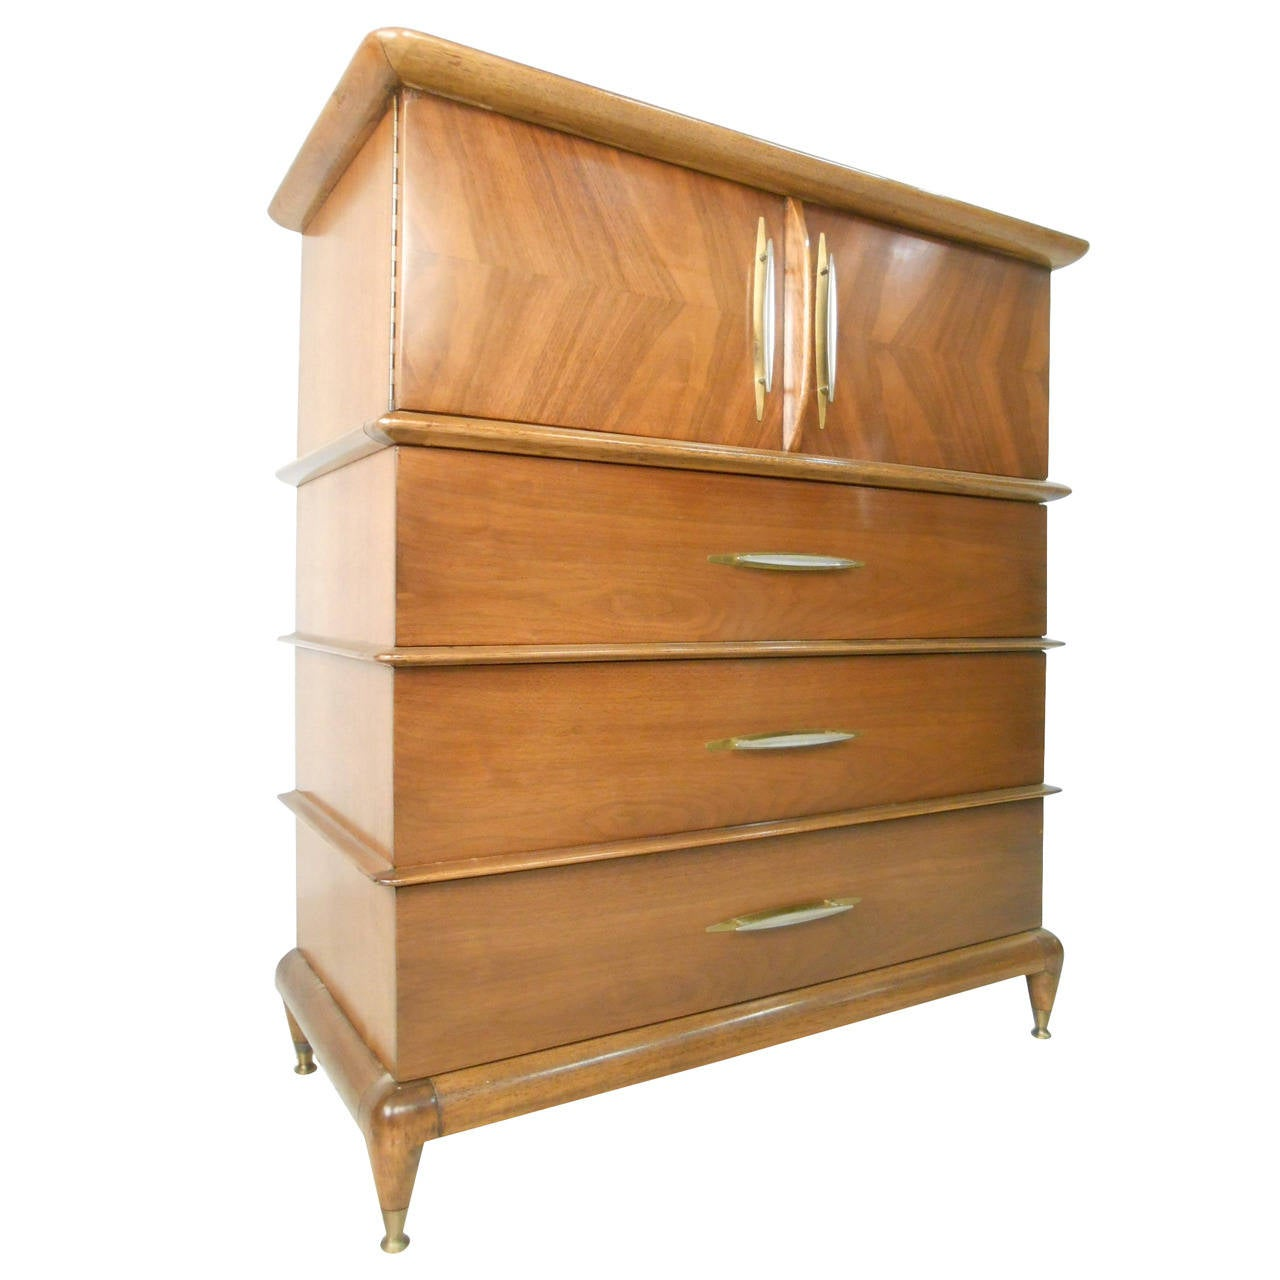 Kent Coffey The Appointment Dresser For Sale At Stdibs - Kent coffey bedroom furniture